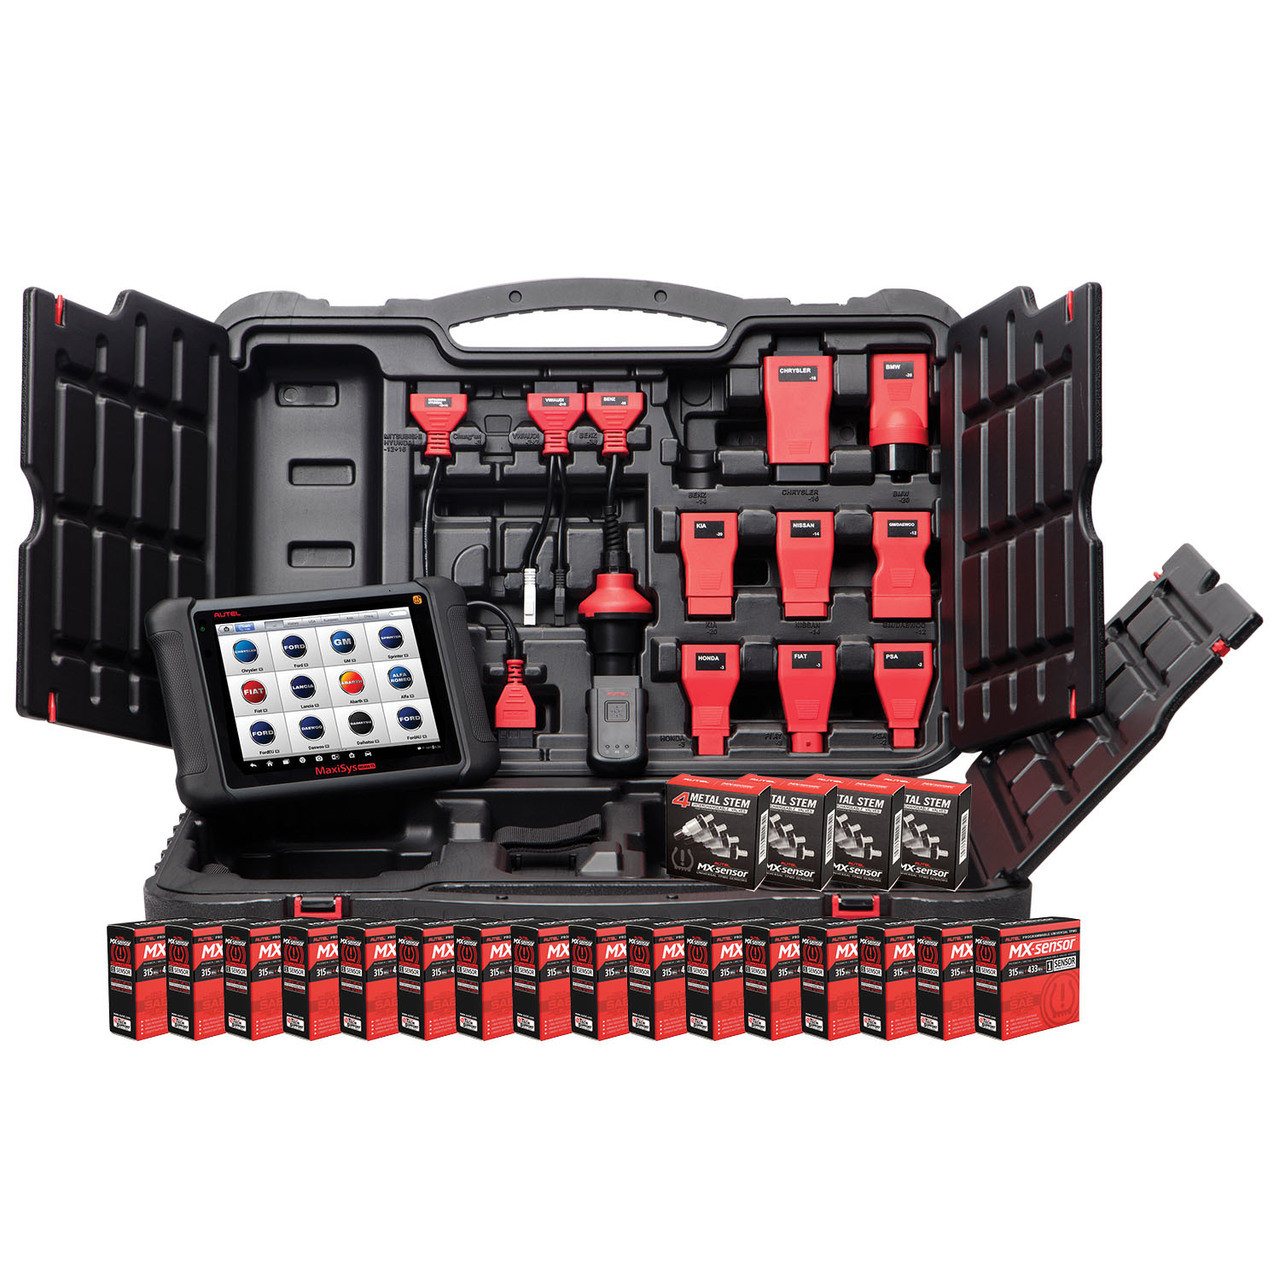 Autel MaxiSys® MS906TS Diagnostic System & Comprehensive TPMS Service  Device part #:AUL-MS906TS